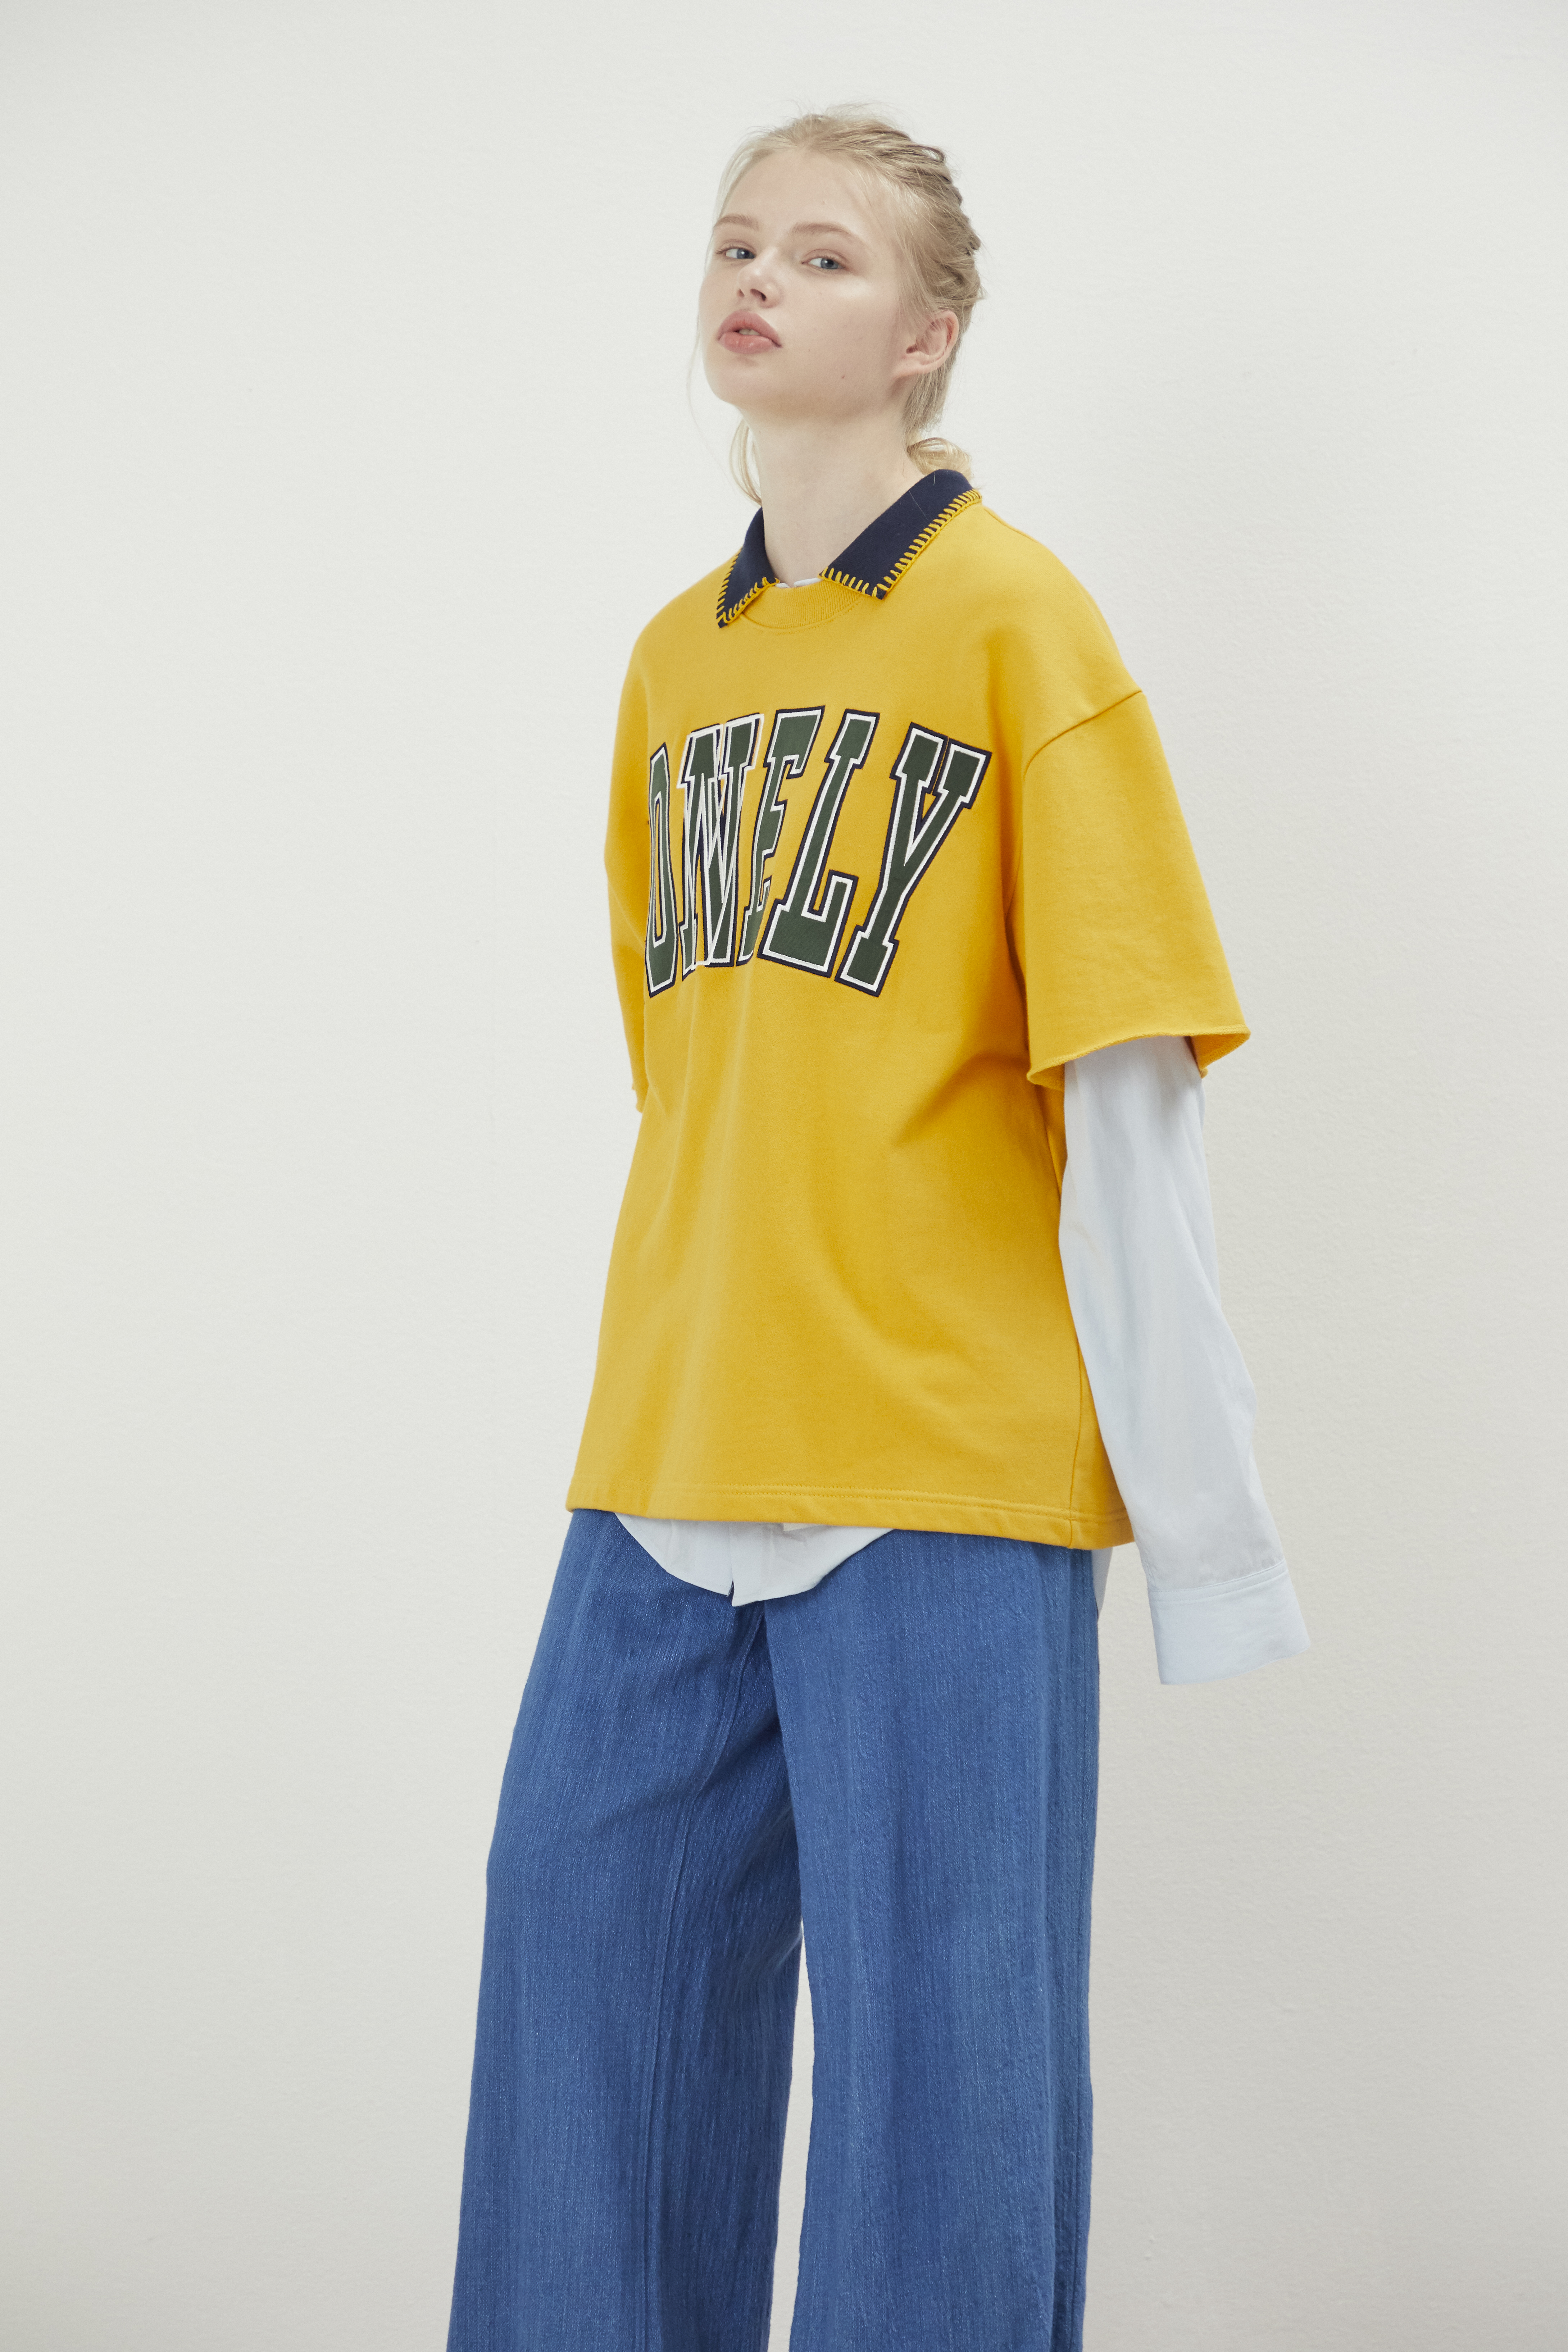 LONELYLOVELYCROPPEDSWEATSHIRTYELLOW-Product-Description-1